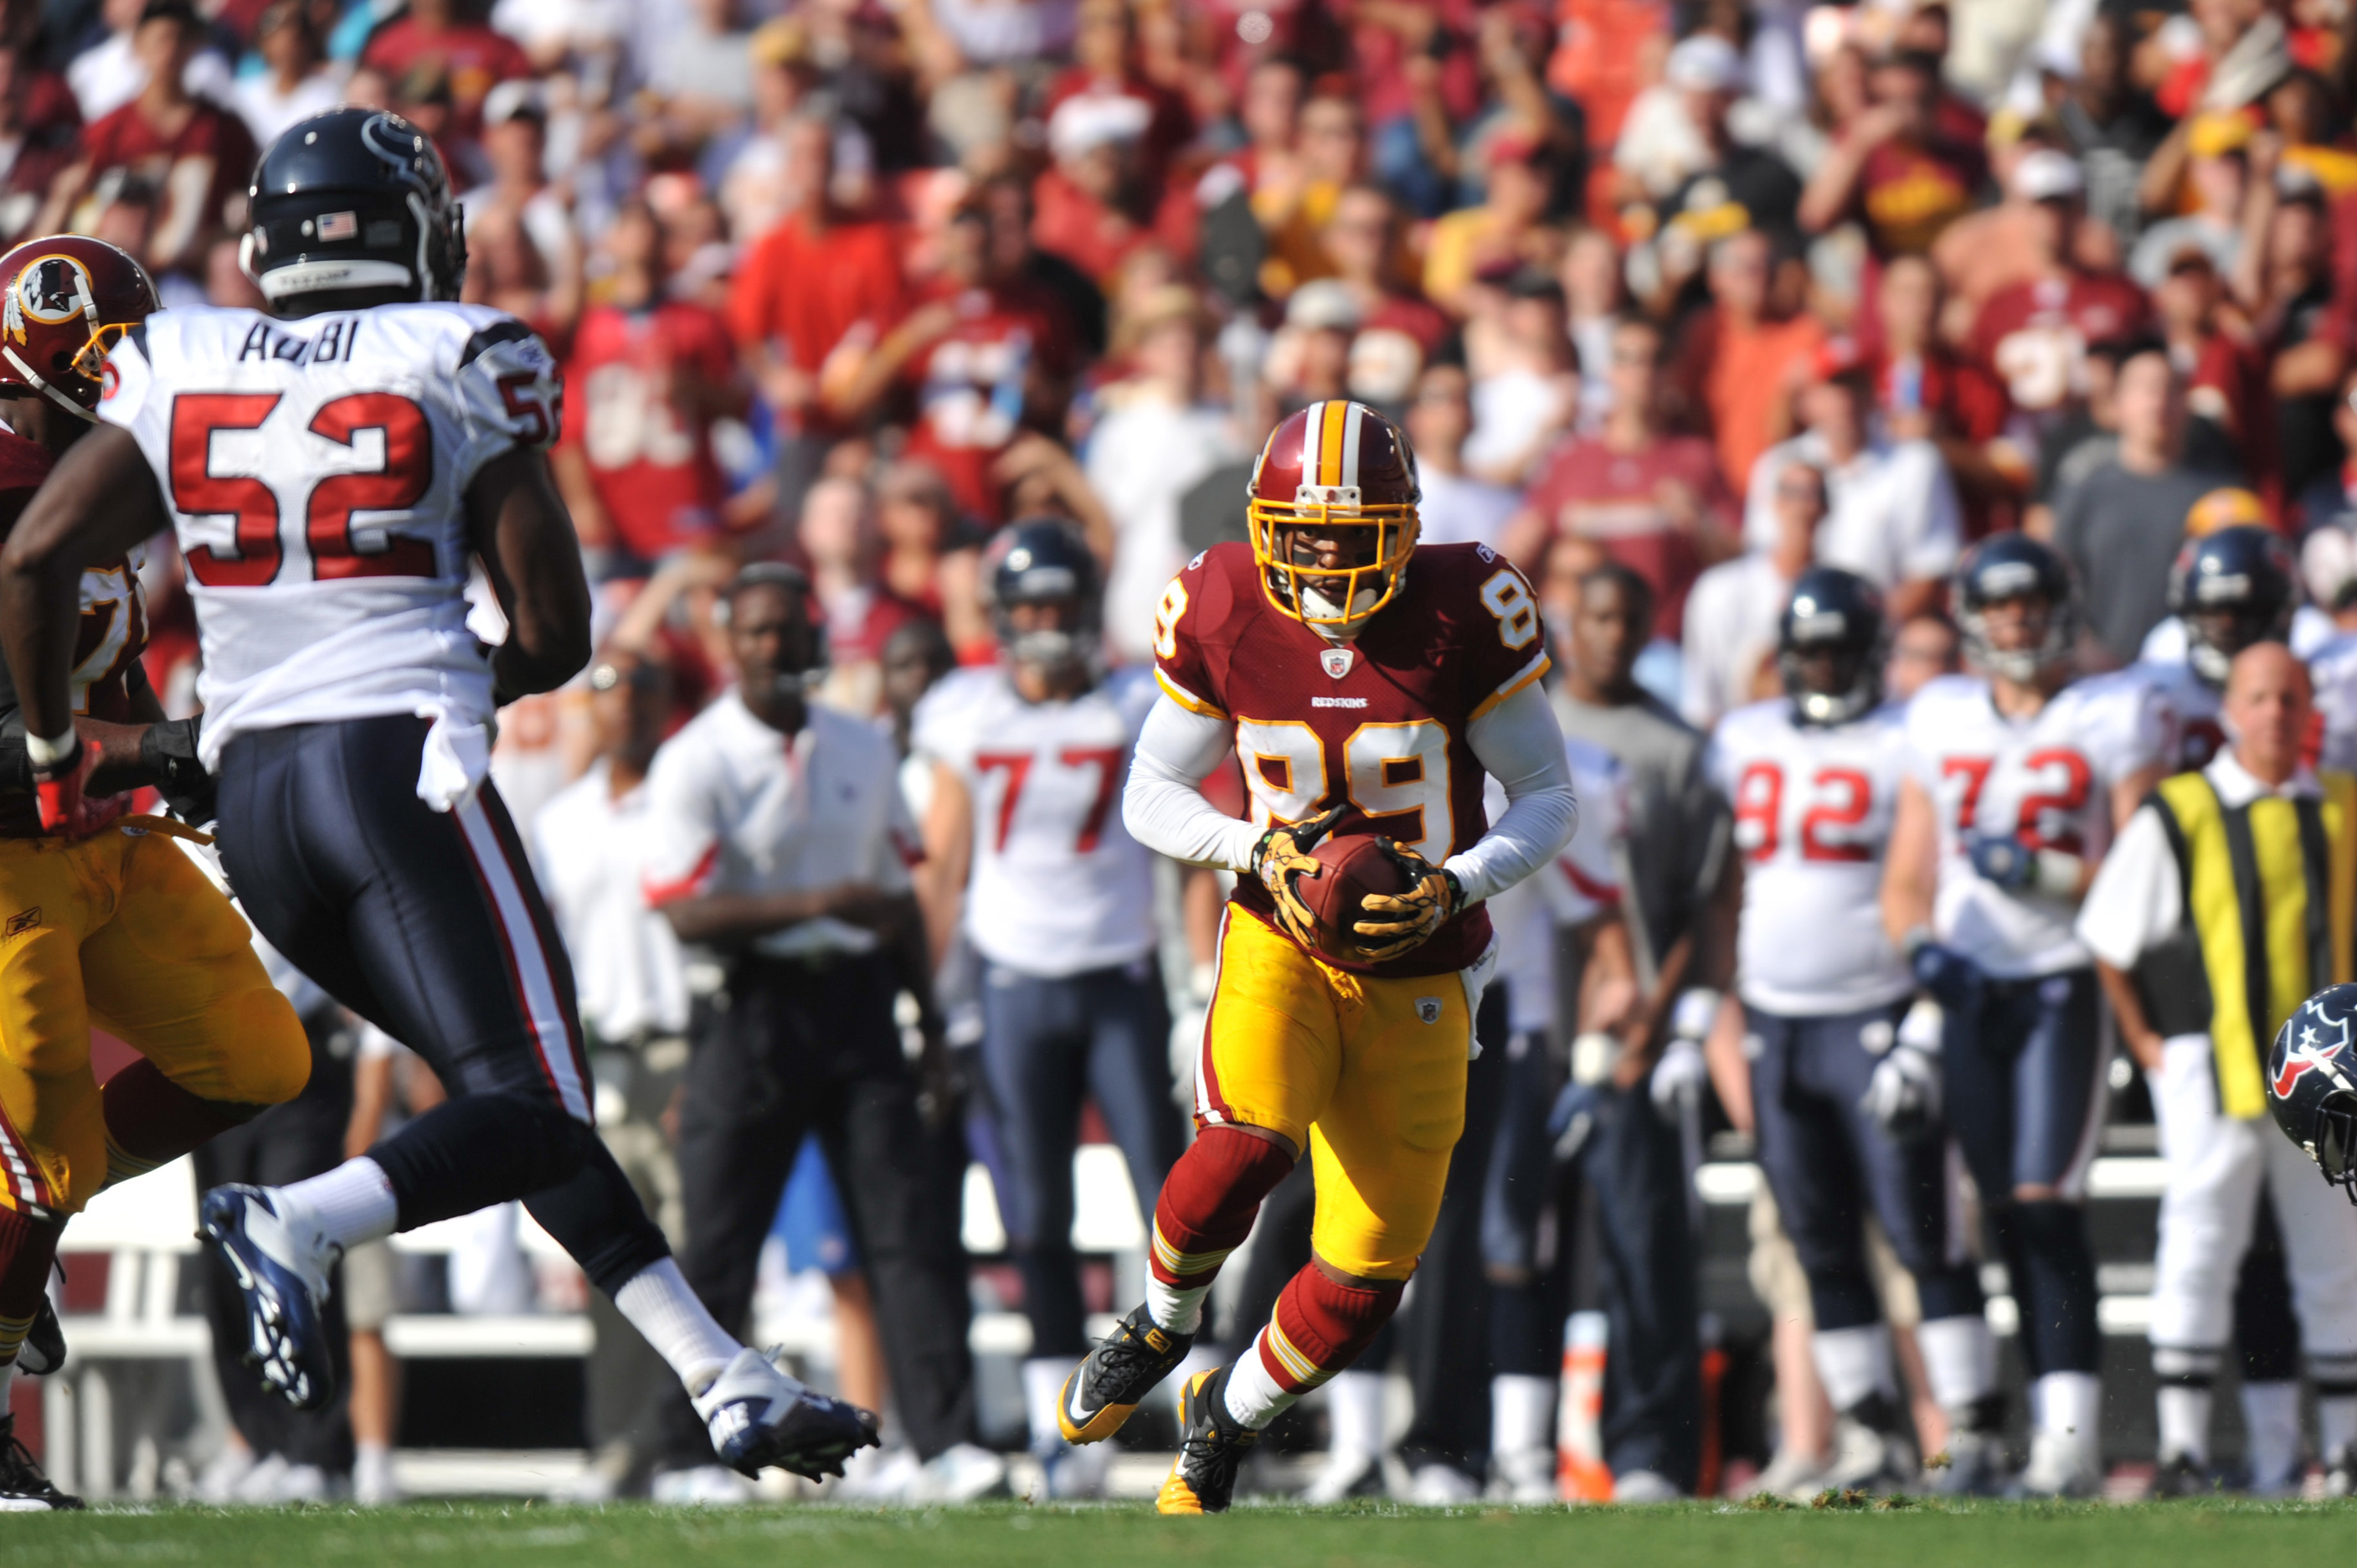 LANDOVER - SEPTEMBER 19:  Santana Moss #89 of the Washington Redskins runs the ball against the Houston Texans at FedExField on September 19, 2010 in Landover, Maryland. The Texans defeated the Redskins in overtime 30-27. (Photo by Larry French/Getty Imag